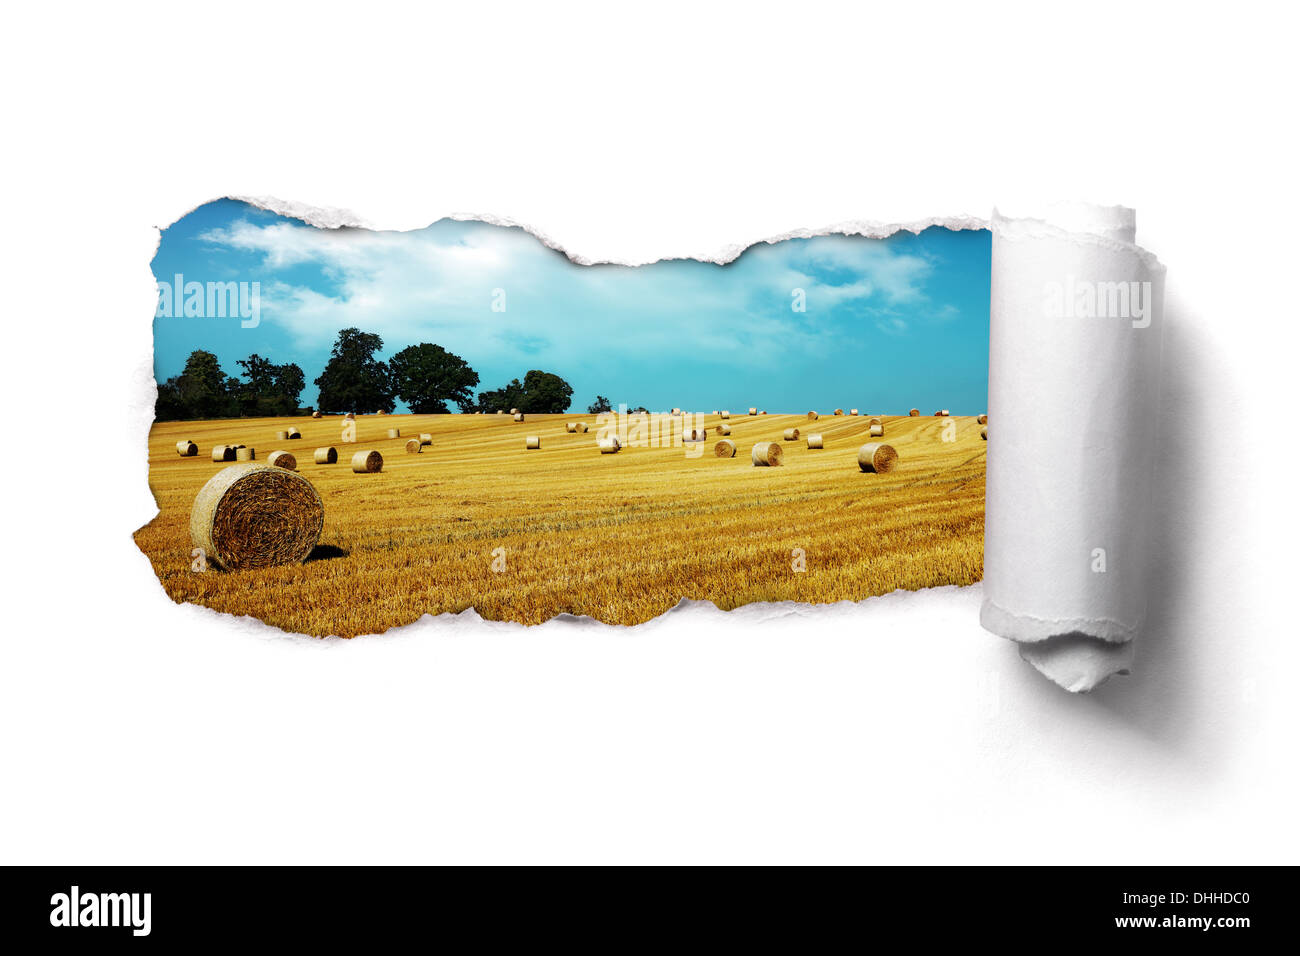 Torn paper over a summer hay bale field landscape Stock Photo